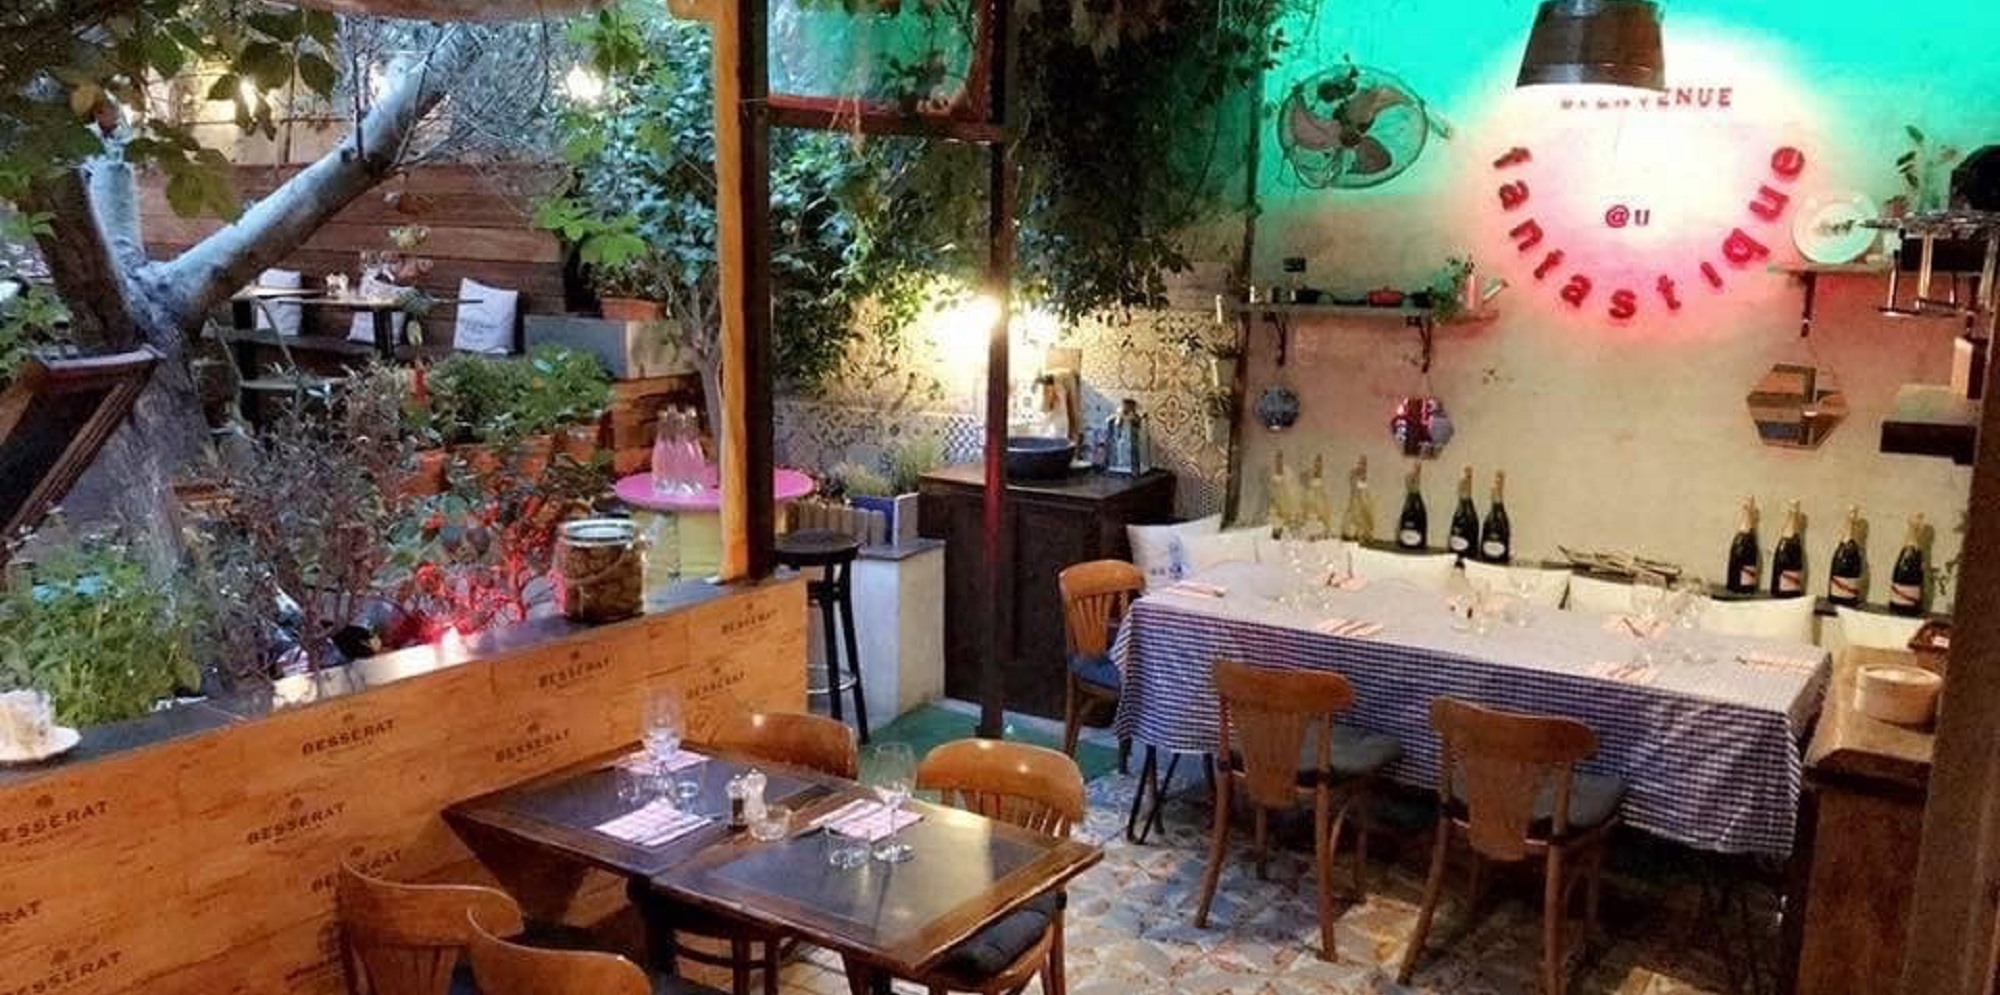 Brunch Le Fantastique (13006 marseille)